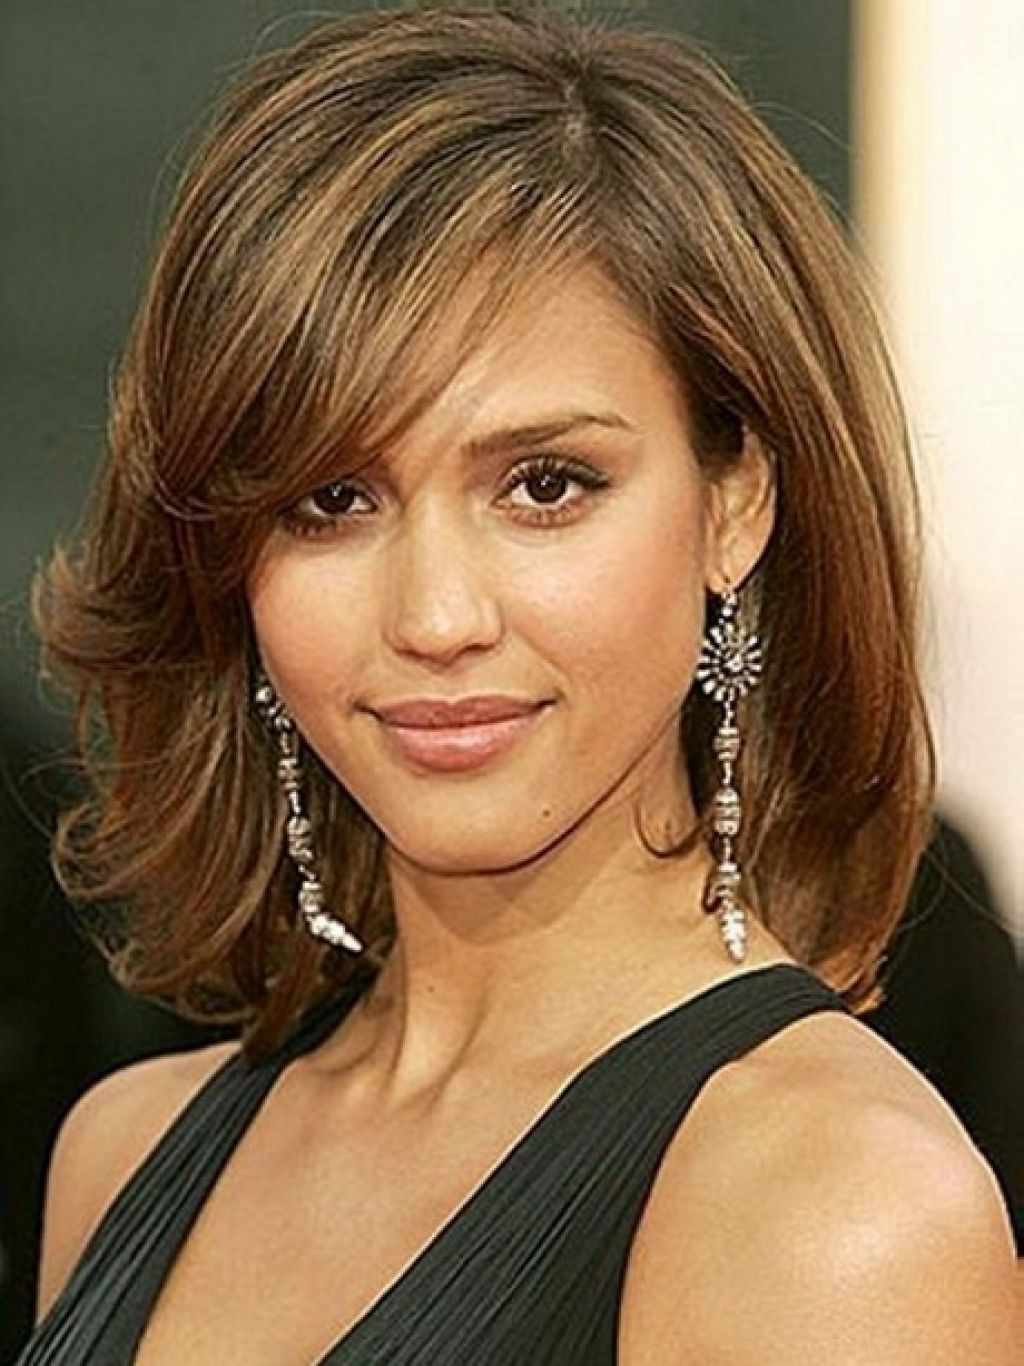 Medium Hairstyles For Women With Round Faces – Hairstyle For Women & Man Inside Most Popular Women Medium Haircuts For Round Faces (View 7 of 20)